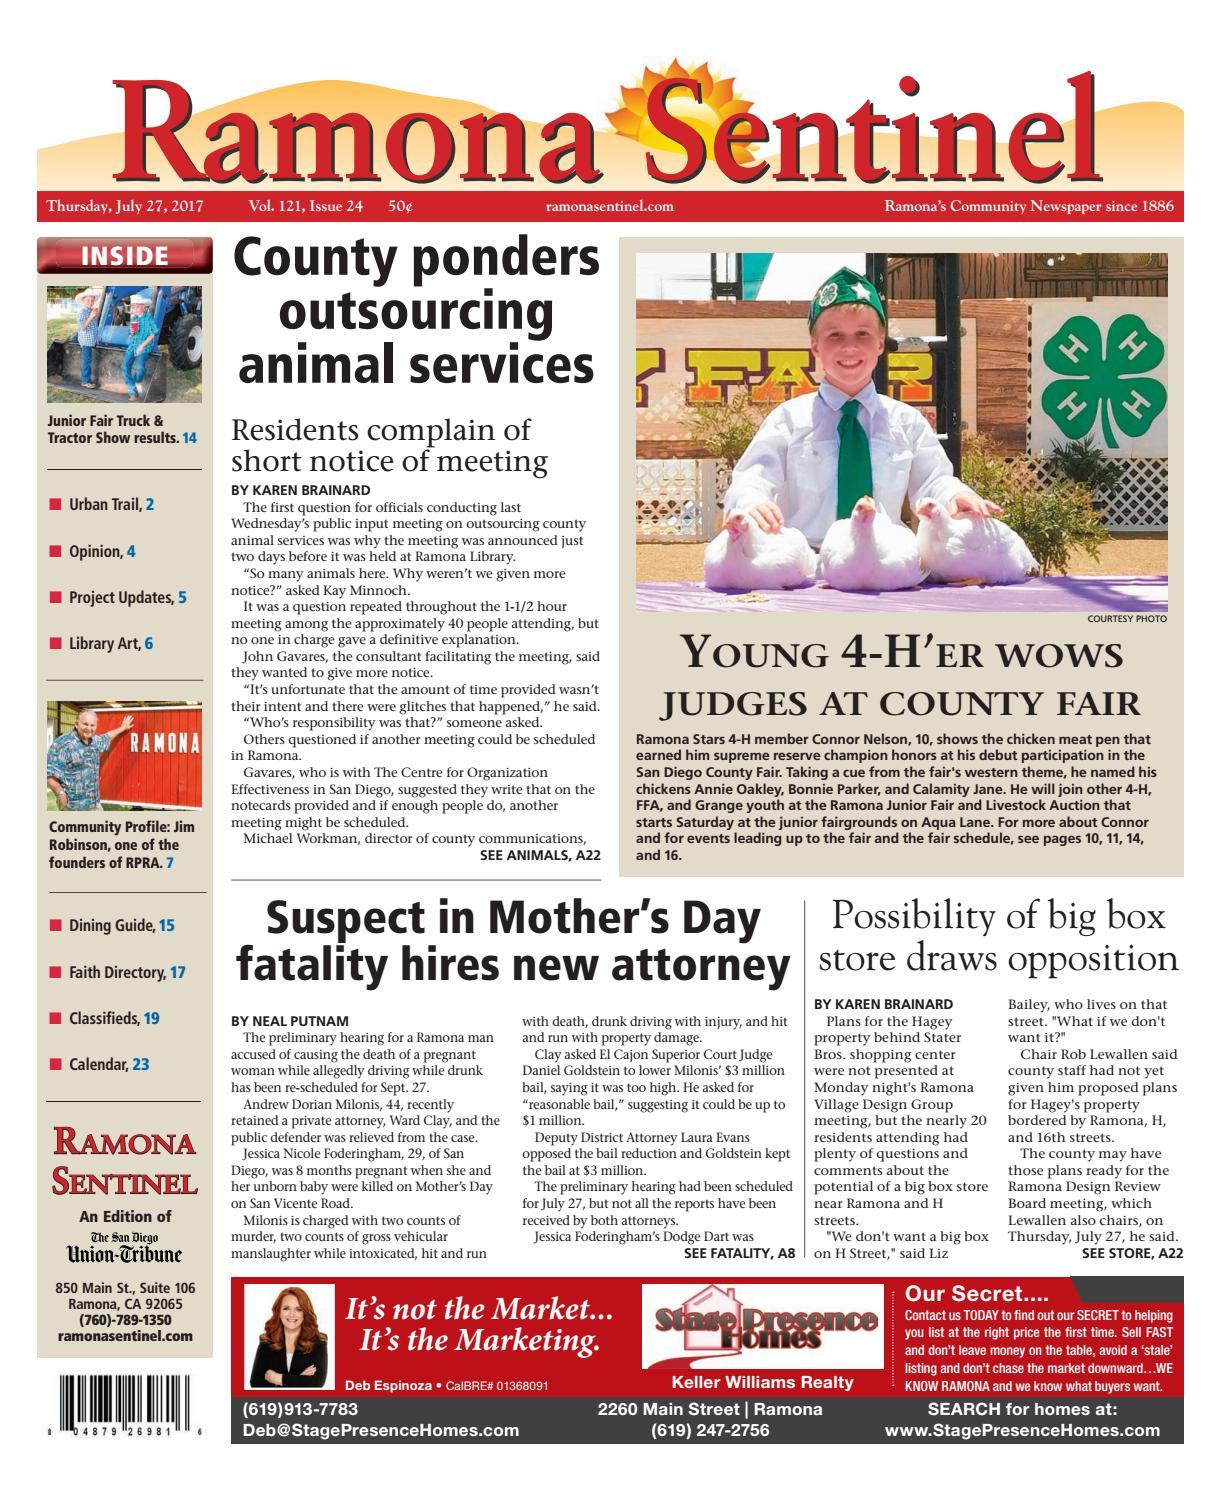 Ramona Sentinel 07 27 17 by MainStreet Media - issuu